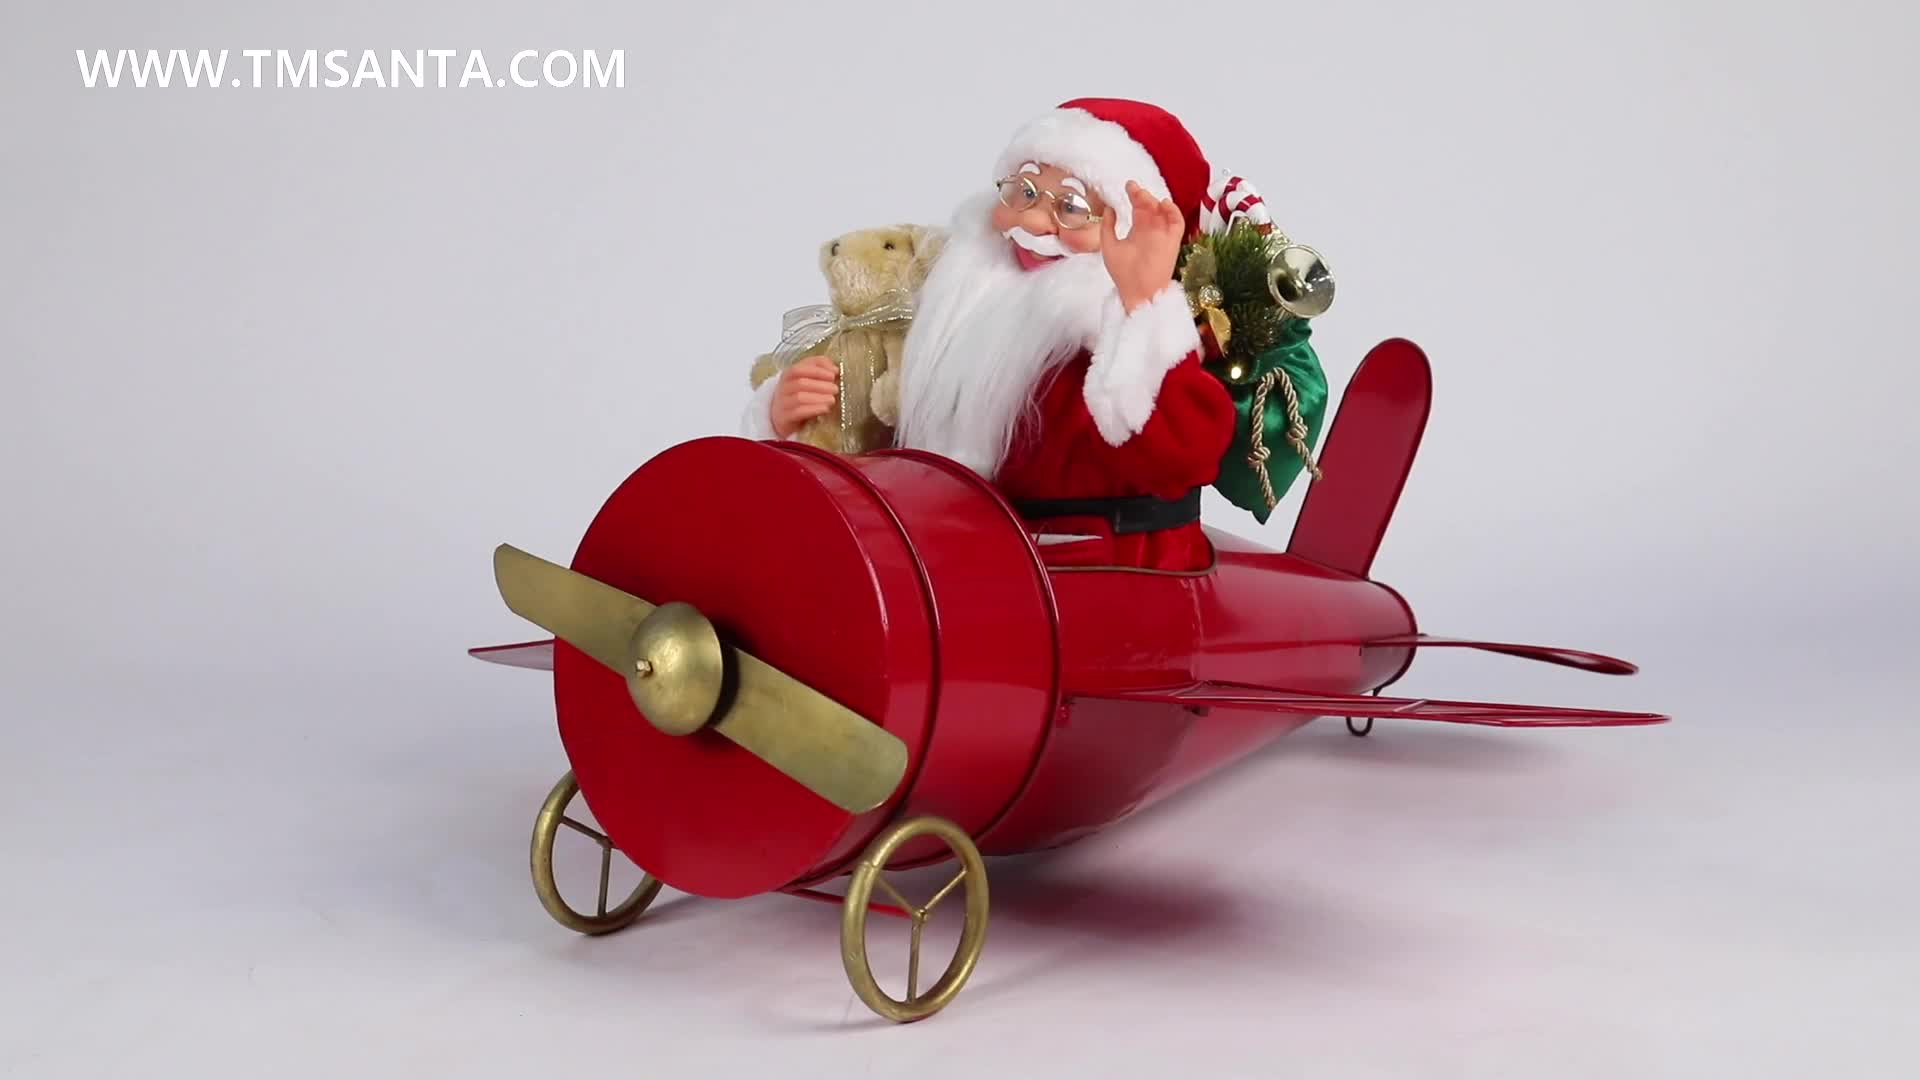 80cm Christmas Musical Animated Santa Claus Sitting  Red Plane Decoration Figurine Classic Holiday Ornament gifts collection